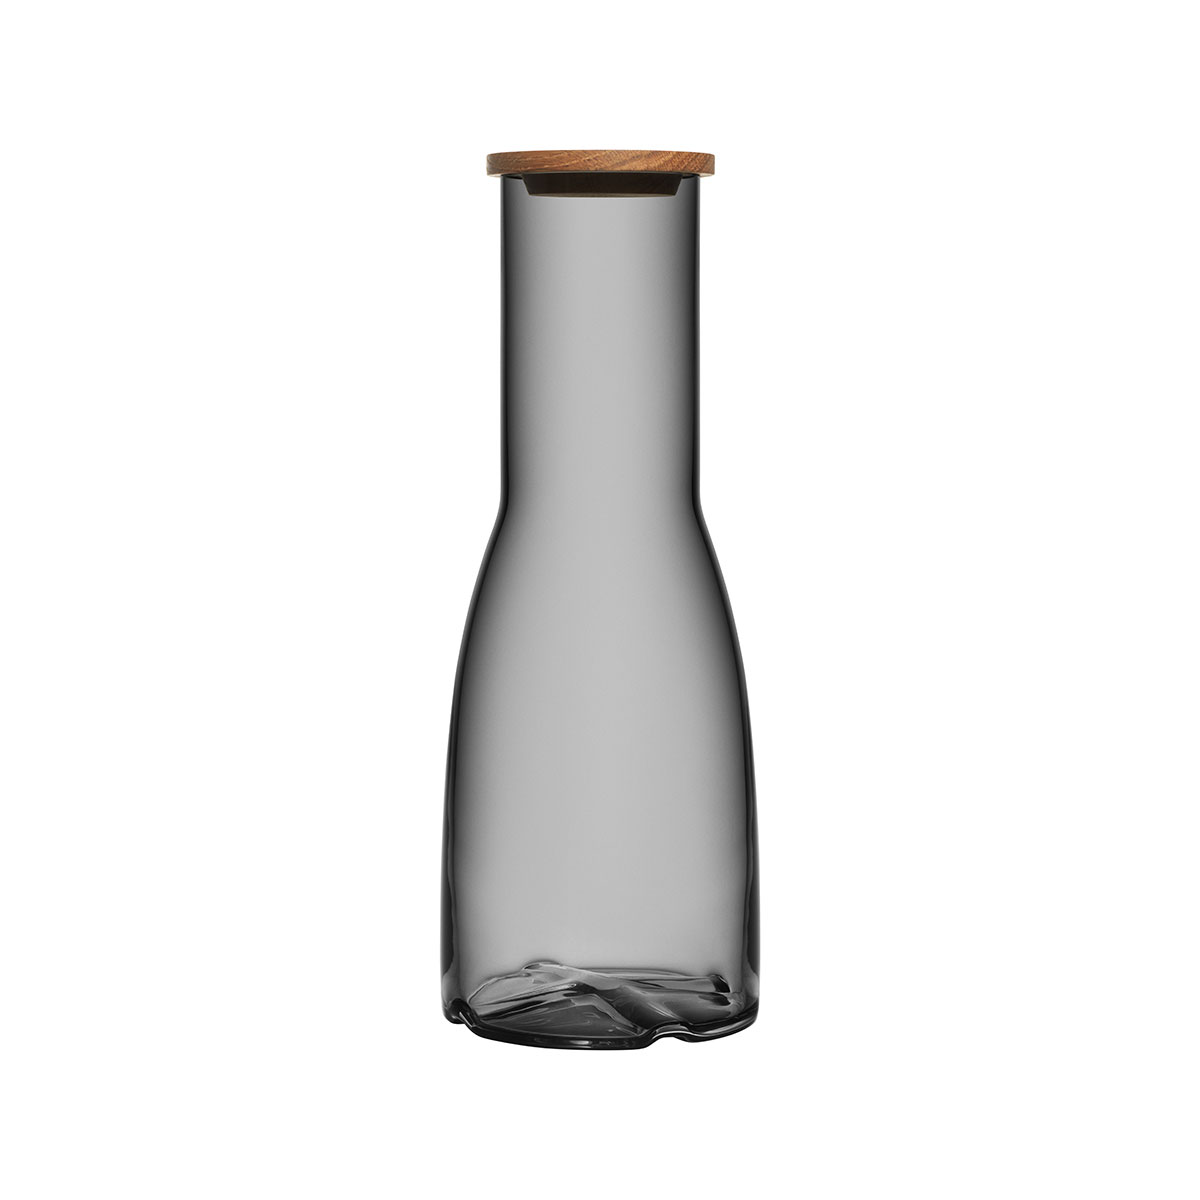 Kosta Boda Bruk Crystal Carafe with Oak Lid, Smoke Grey